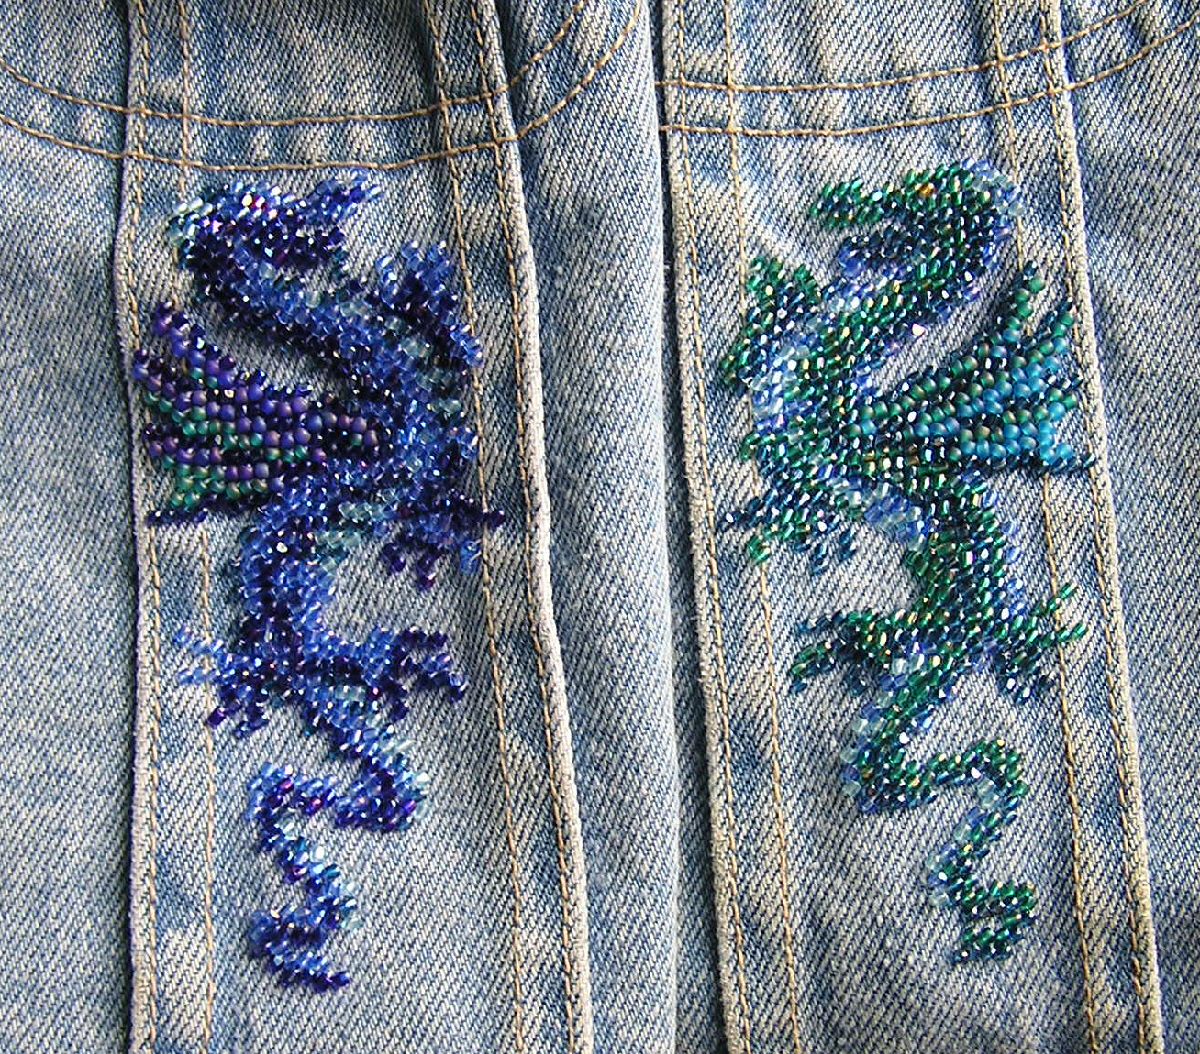 Patterns - Beadwork - BellaOnline -- The Voice of Women